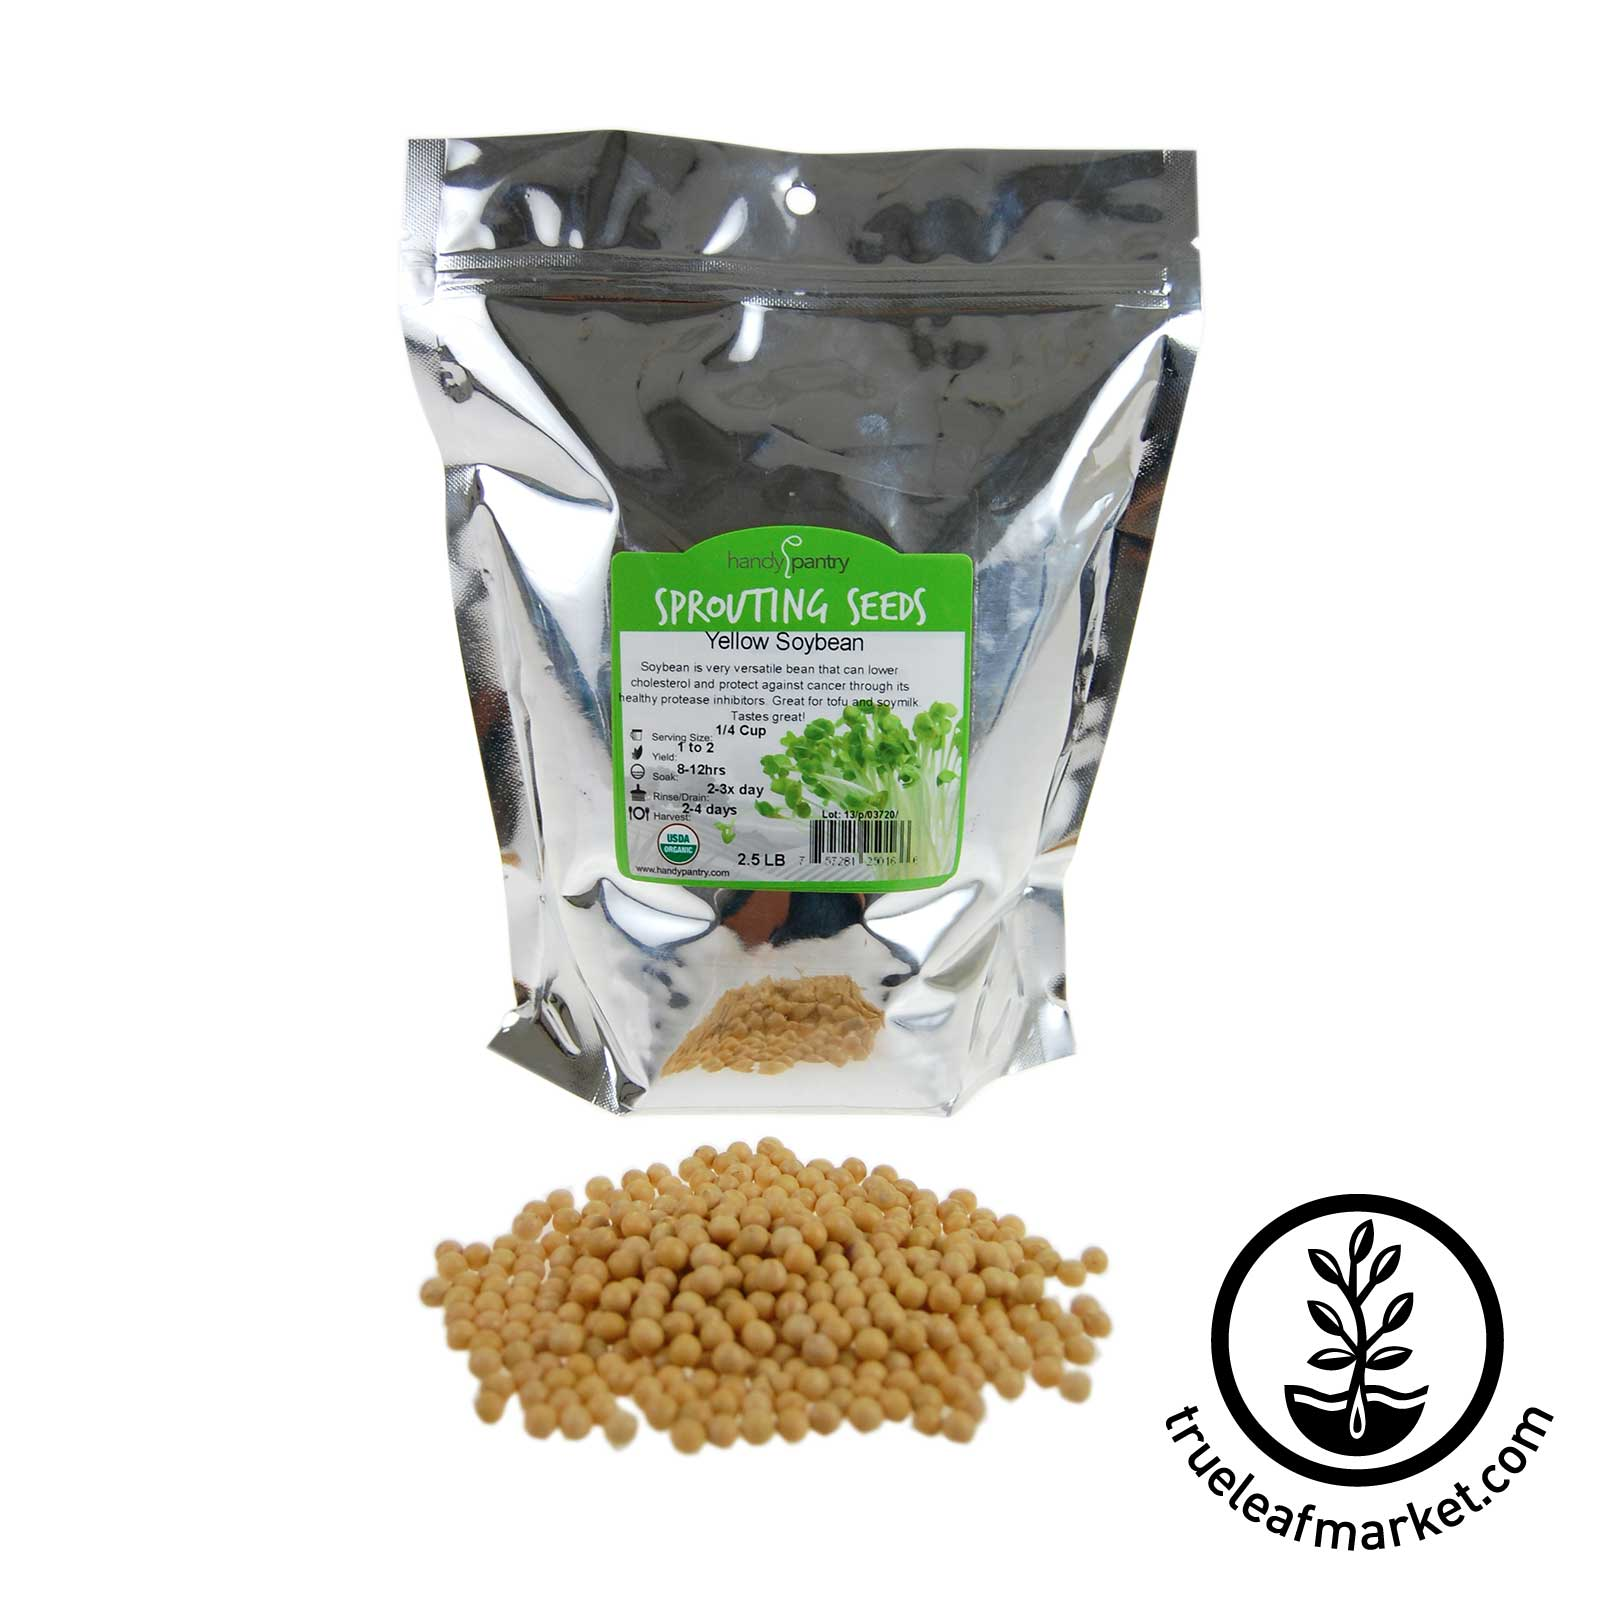 2.5 LB Bag - Organic Yellow Soybeans